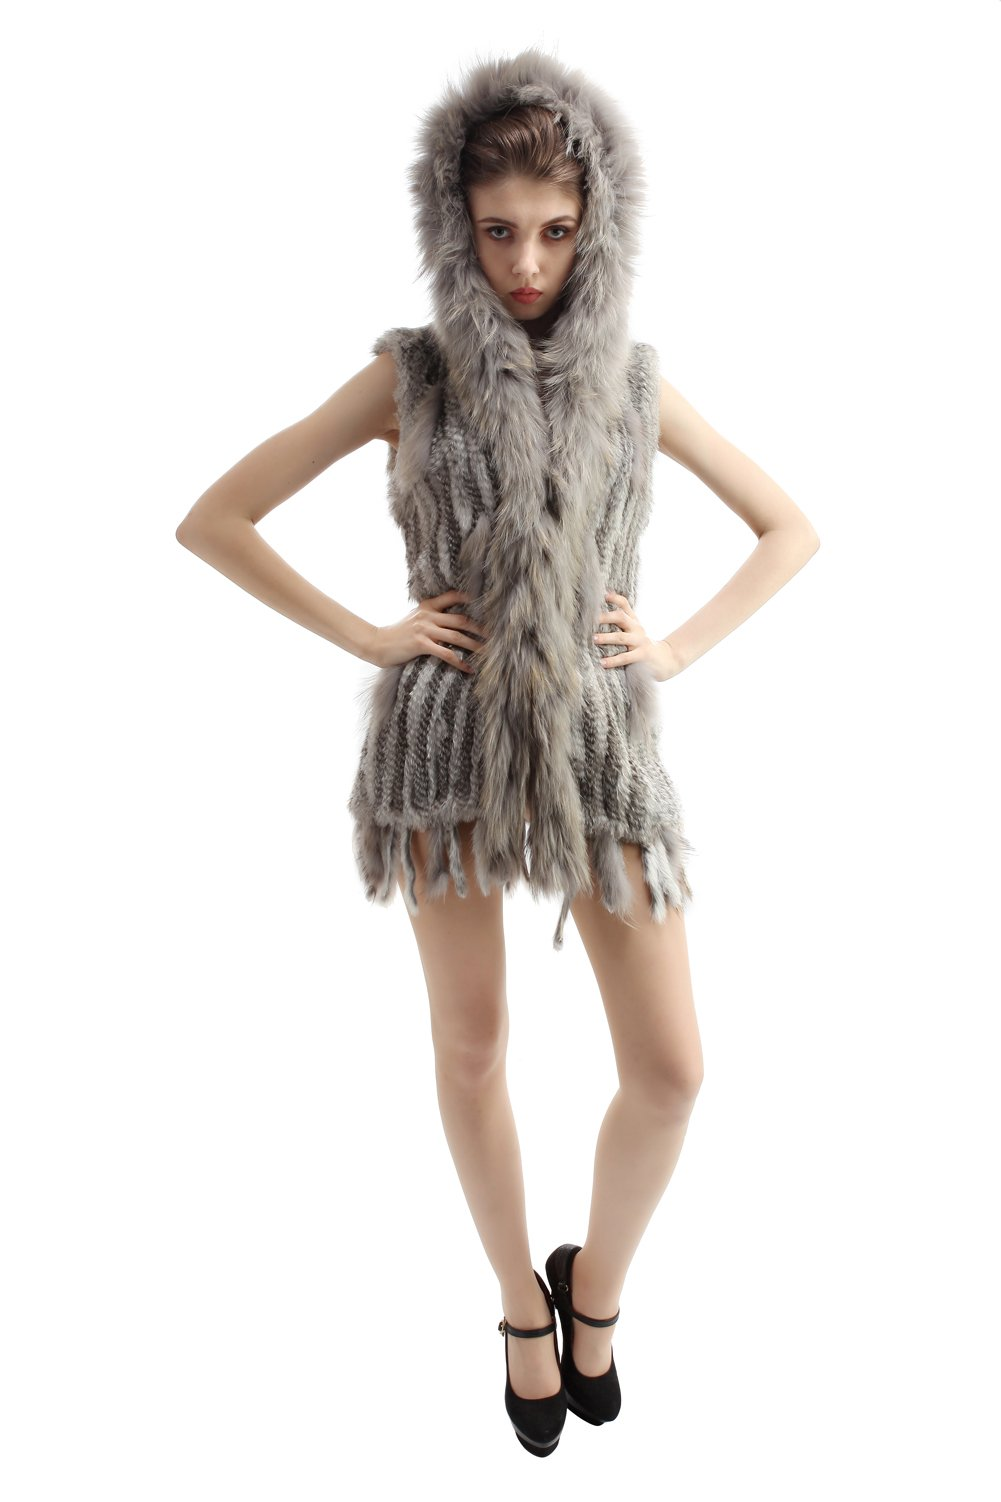 Vemolla Luxurious Knitted Rabbit Fur Trim Jacket Vest with Hood Size XXXL Nature Grey